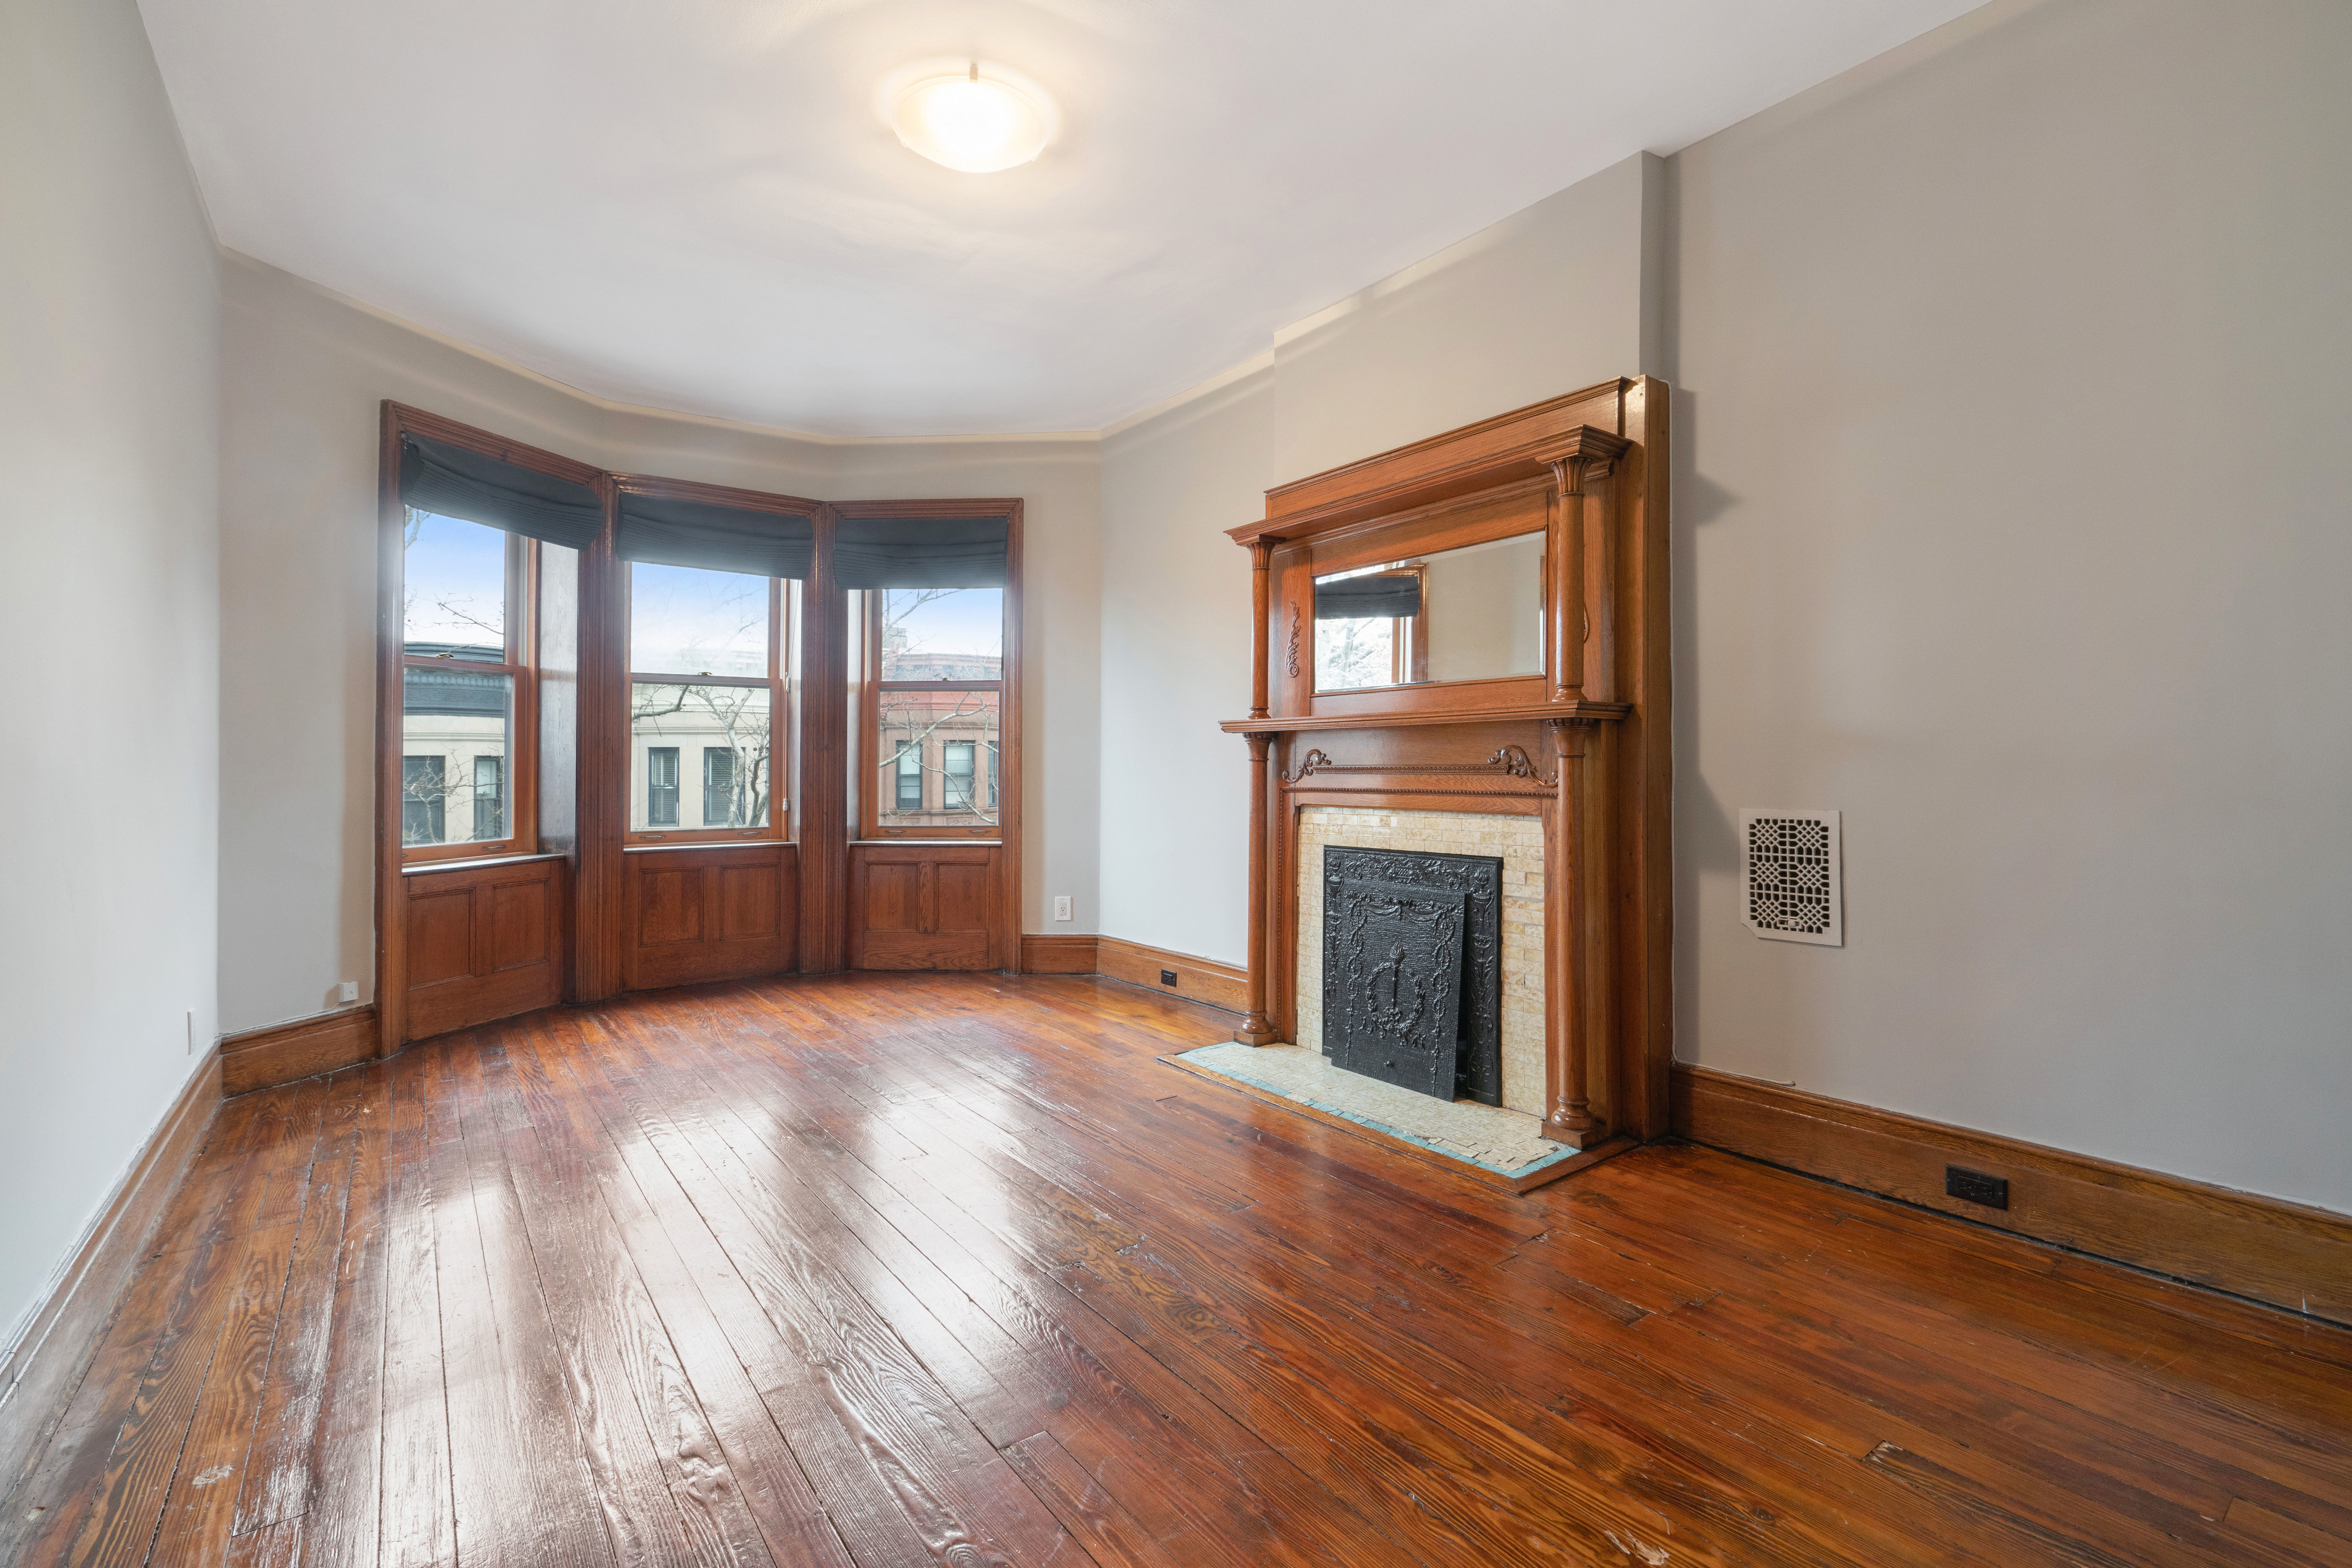 594 2nd St Photo 10 - BROWNSTONER-LISTING-47512a55ccfbbeb19b0a8fb315f62163